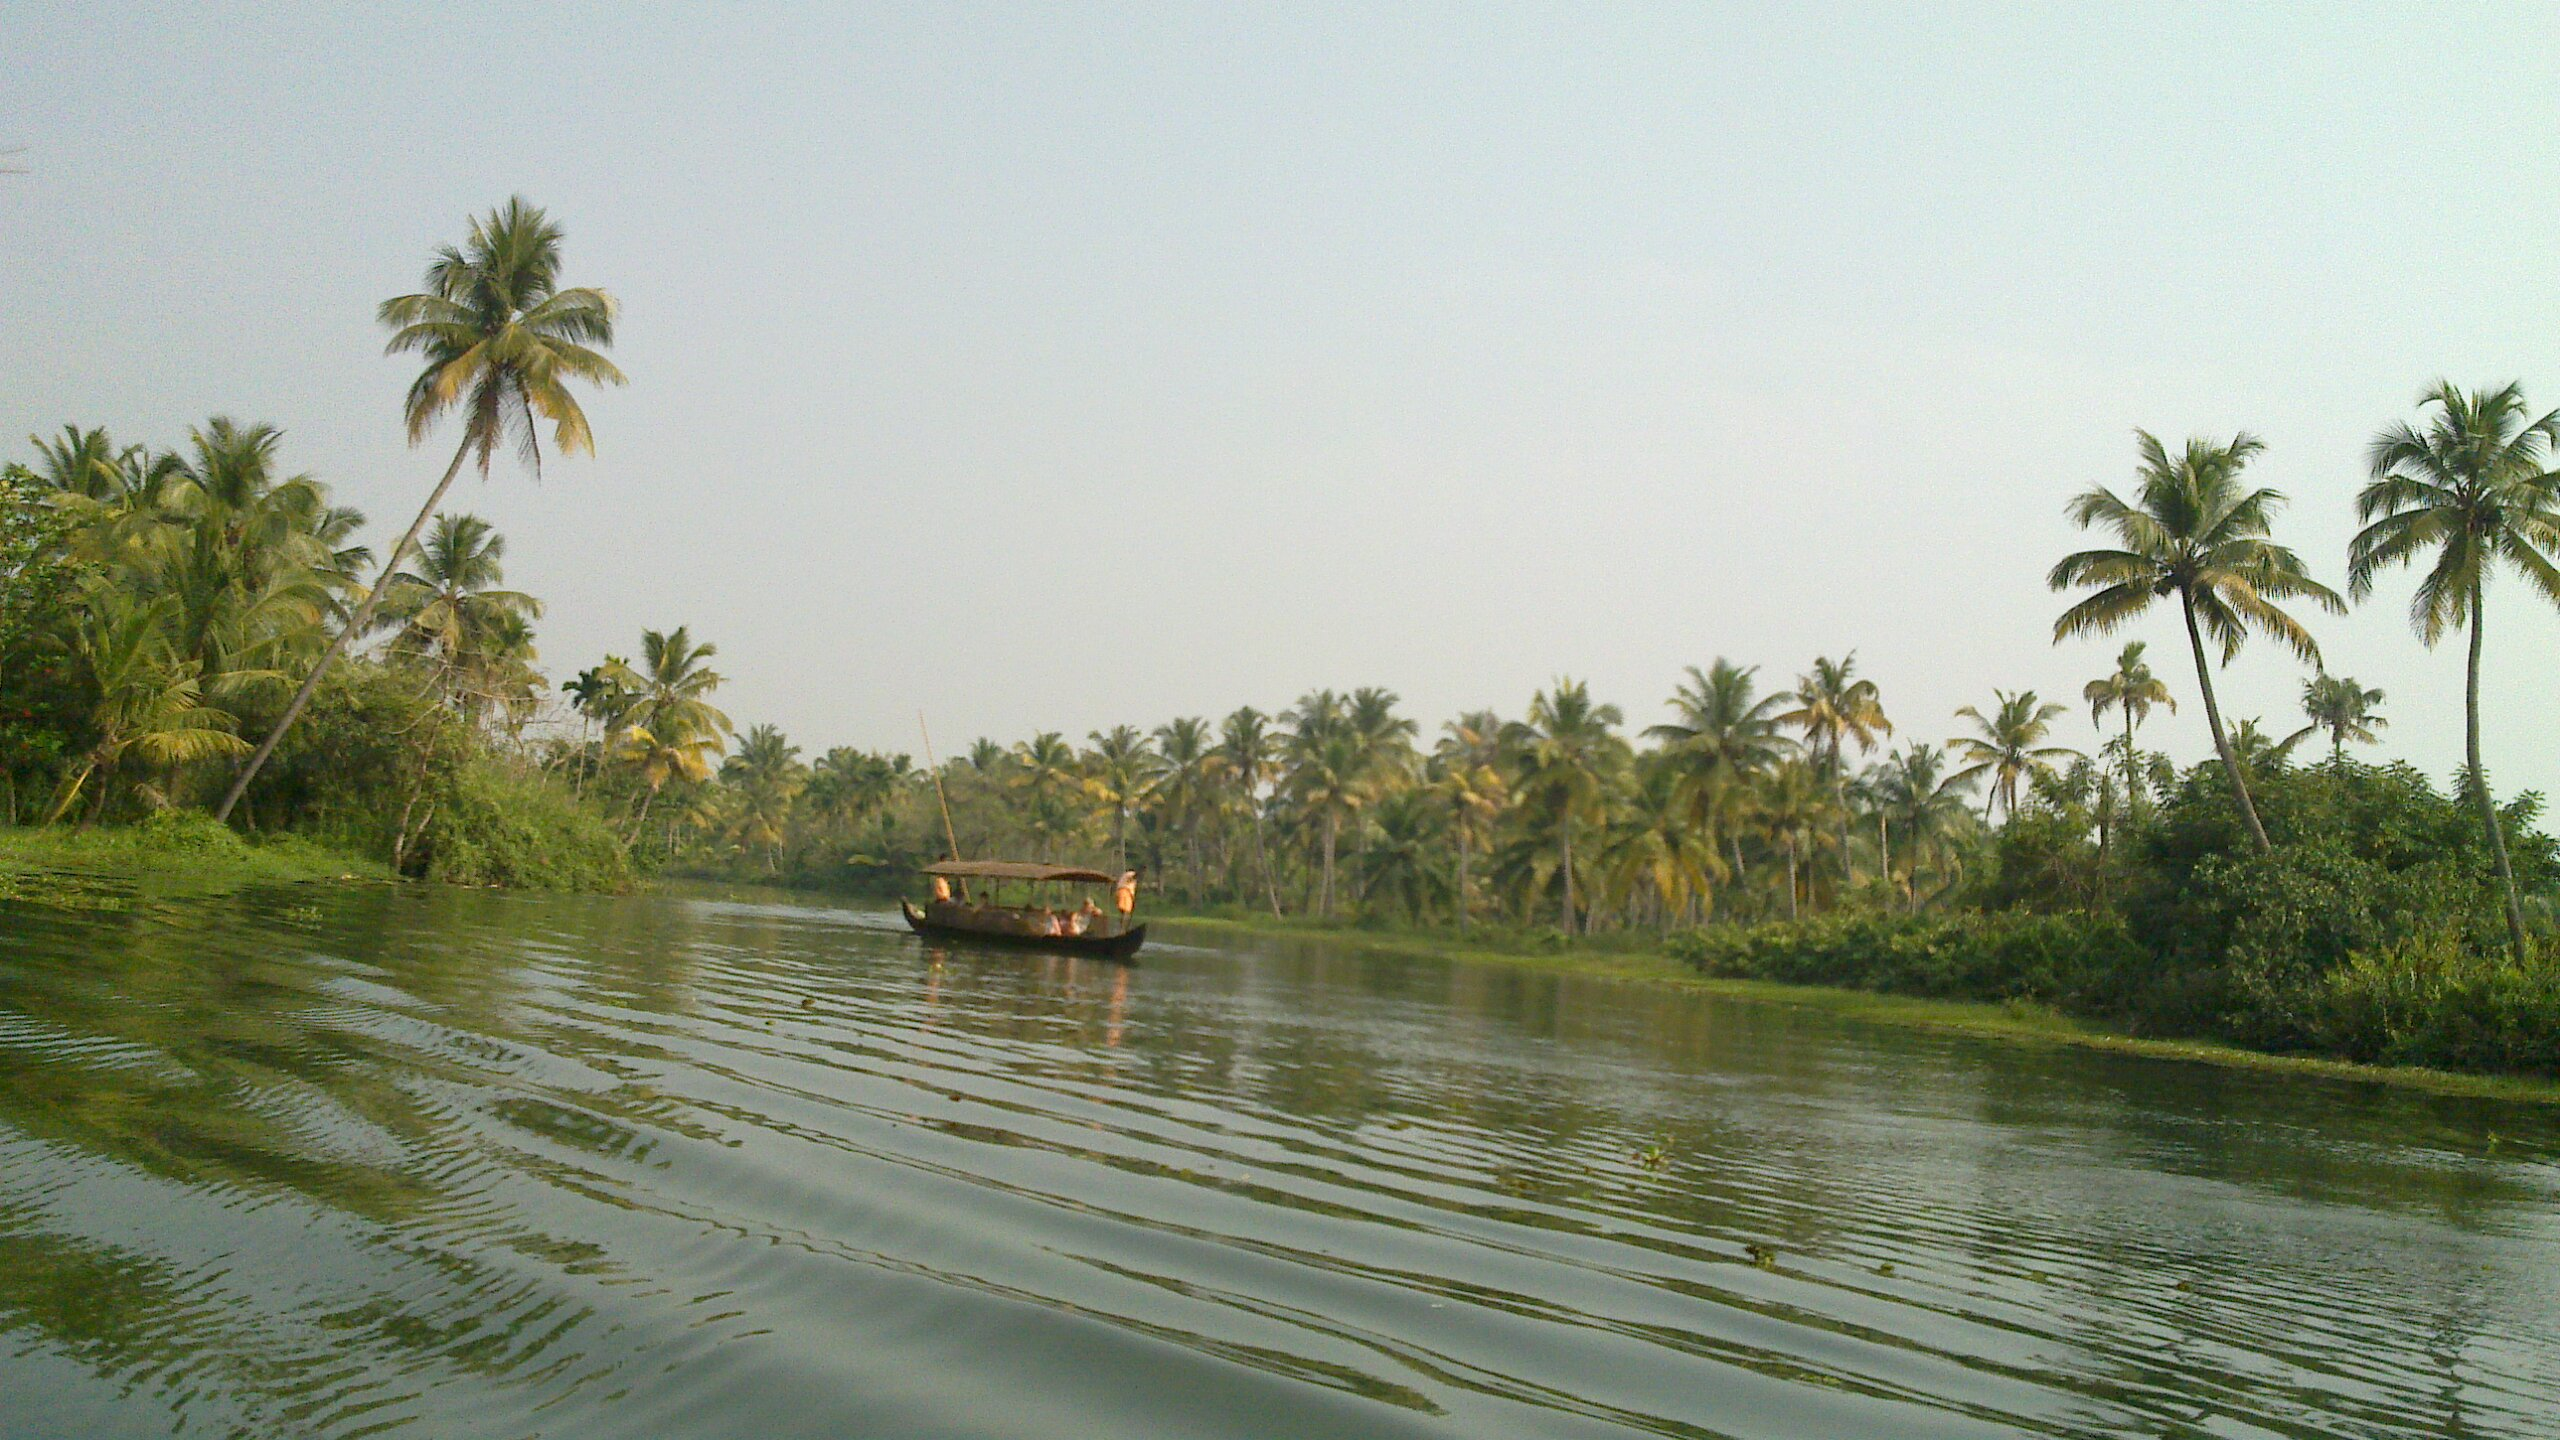 Boat on the river, Boat, India, Palms, River, HQ Photo